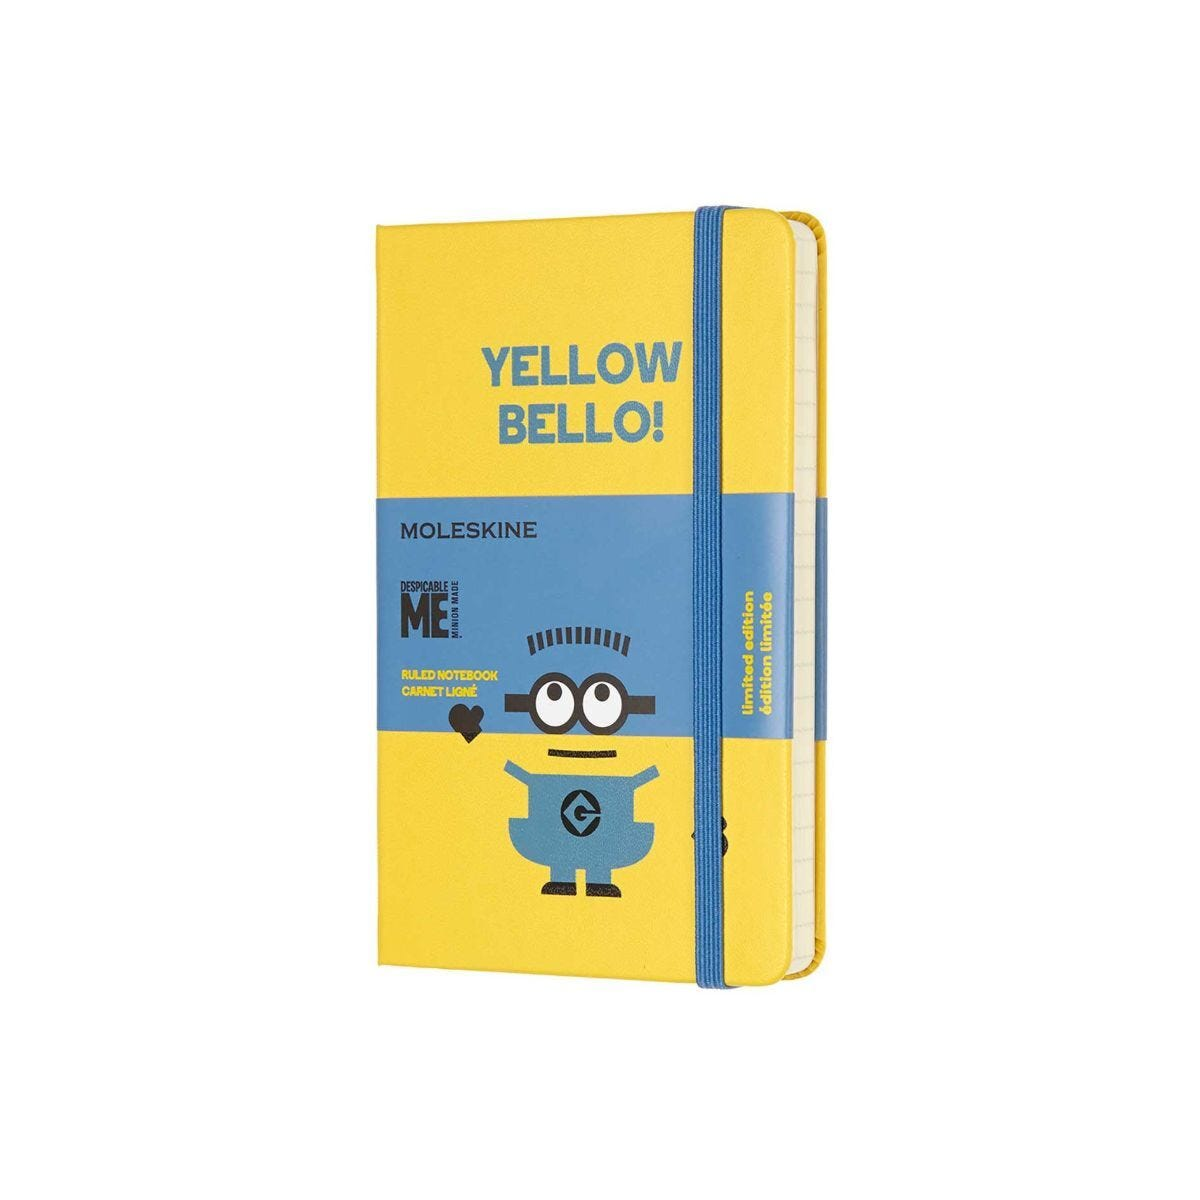 Moleskine Special Edition Pocket Ruled Notebook Minions Yellow